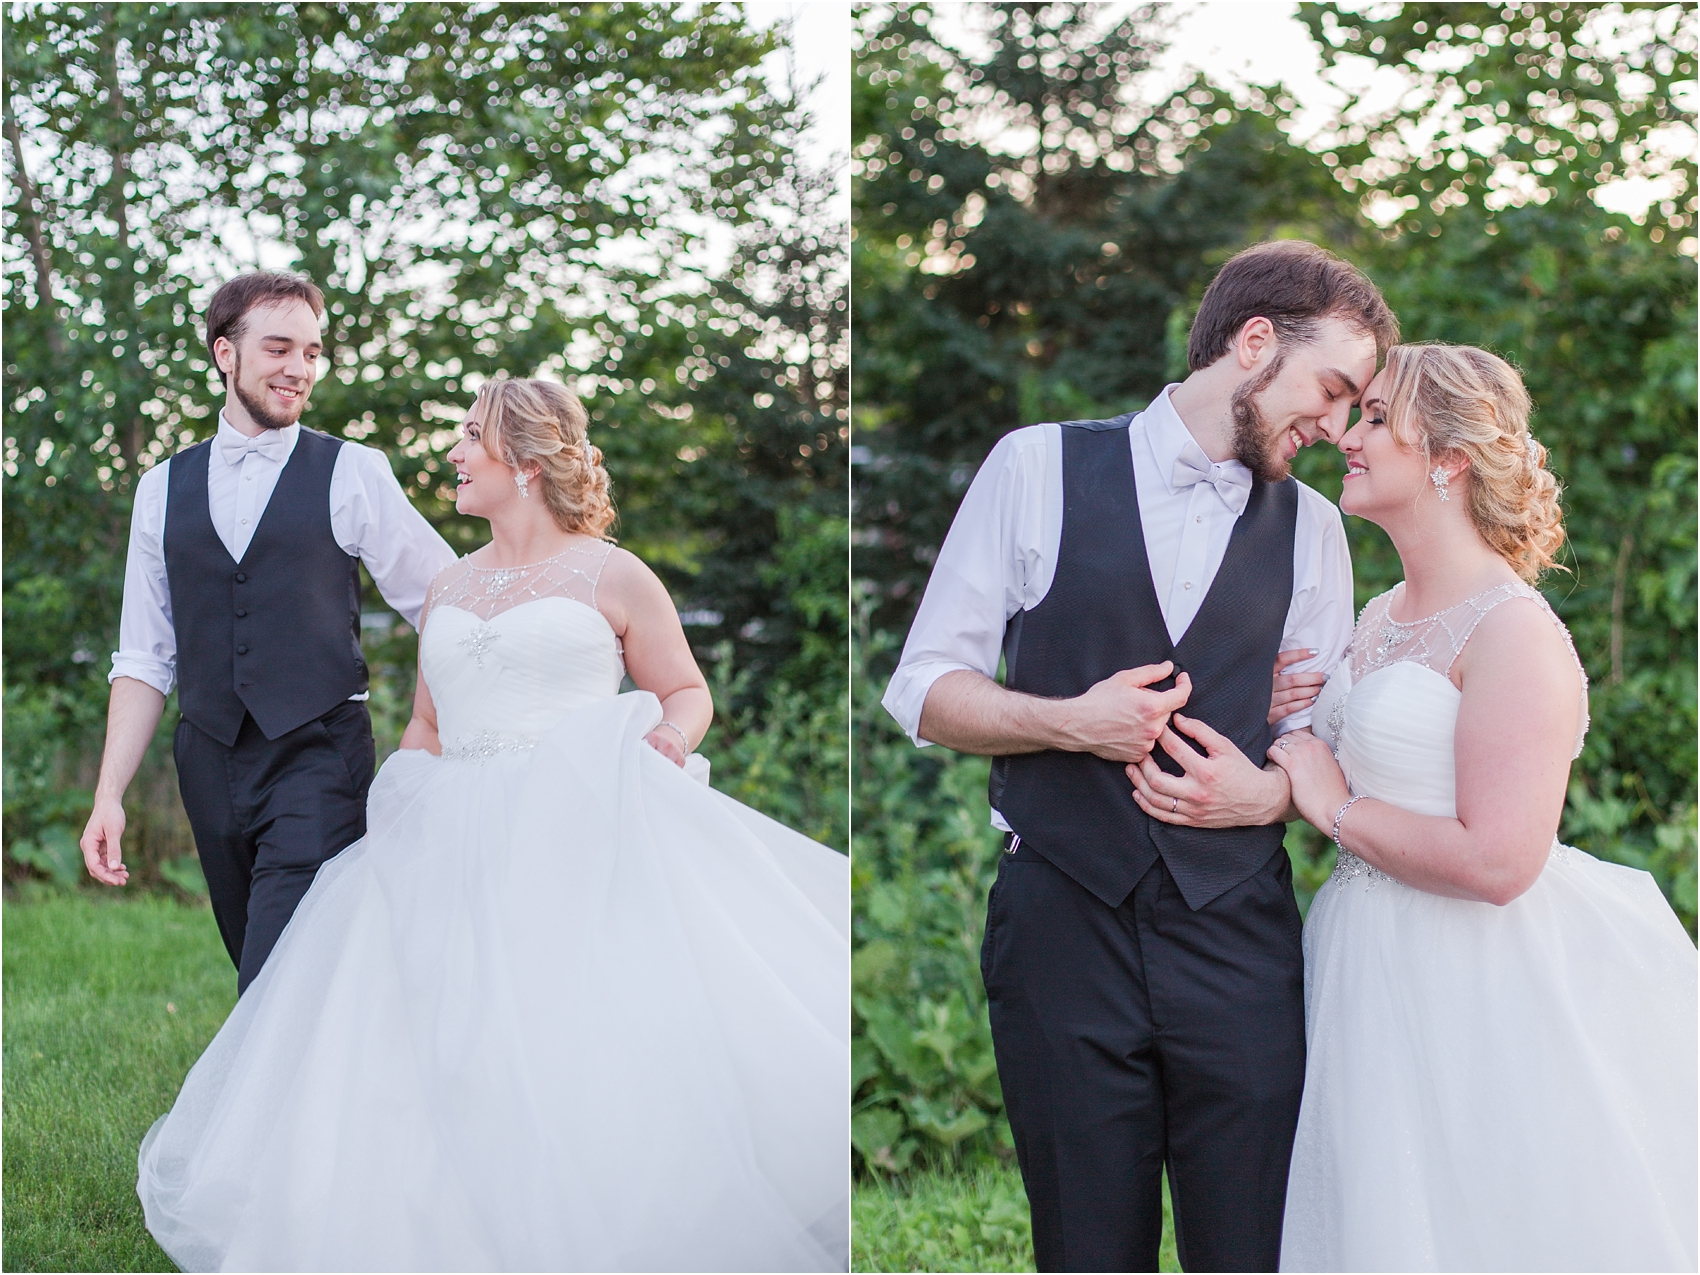 lord-of-the-rings-inspired-wedding-photos-at-crystal-gardens-in-howell-mi-by-courtney-carolyn-photography_0124.jpg